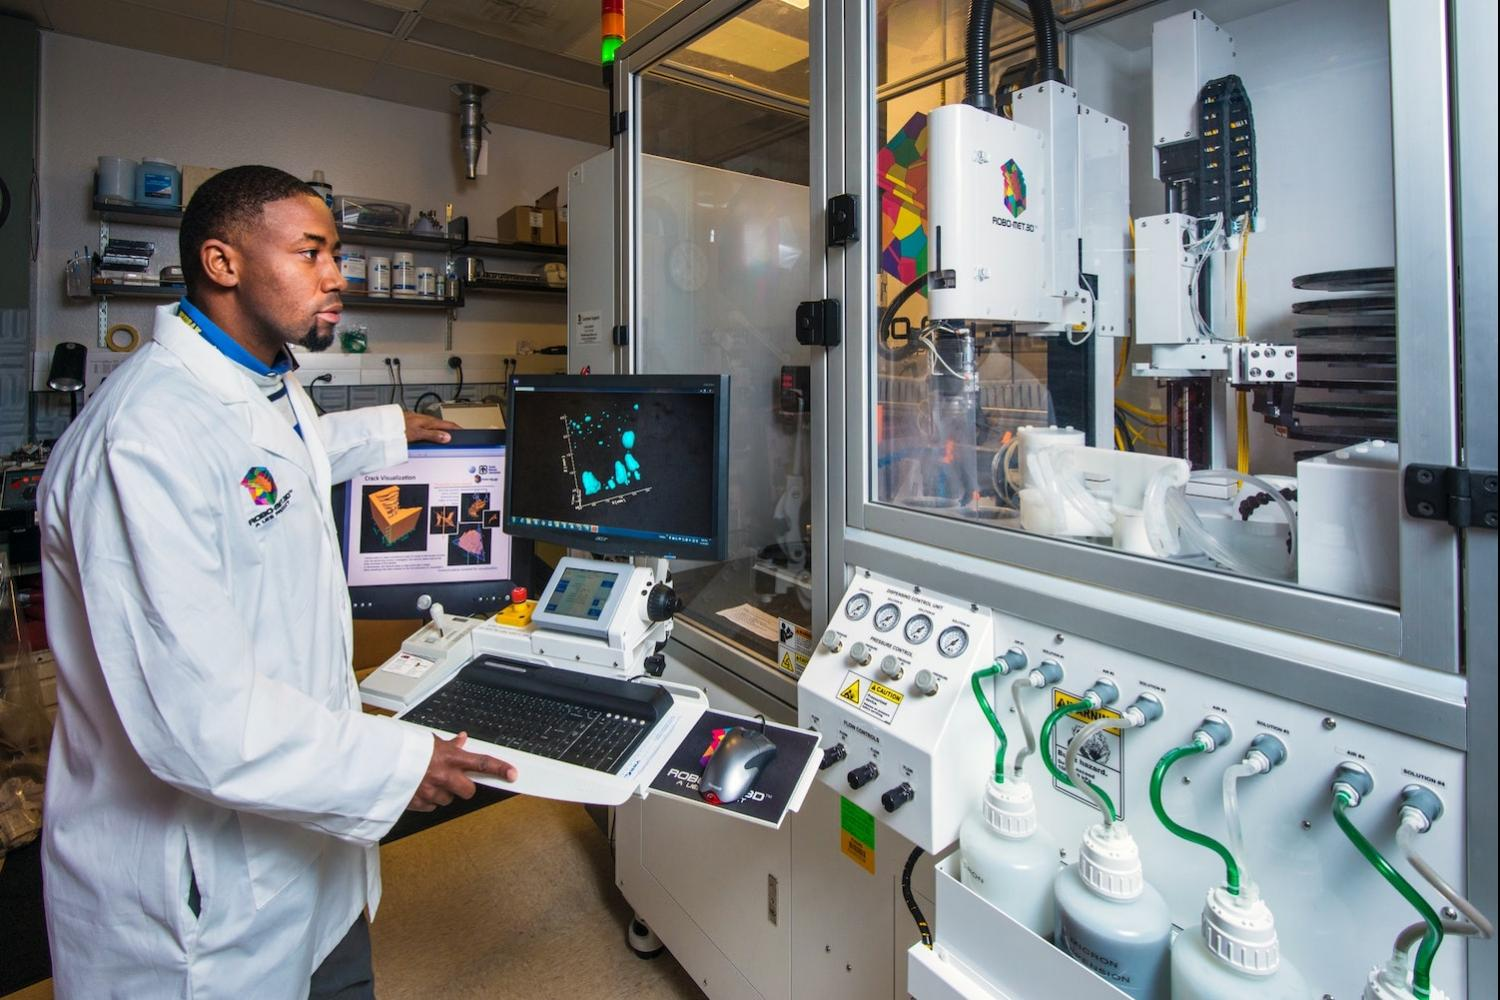 HBCUs work to bring more Black students into tech